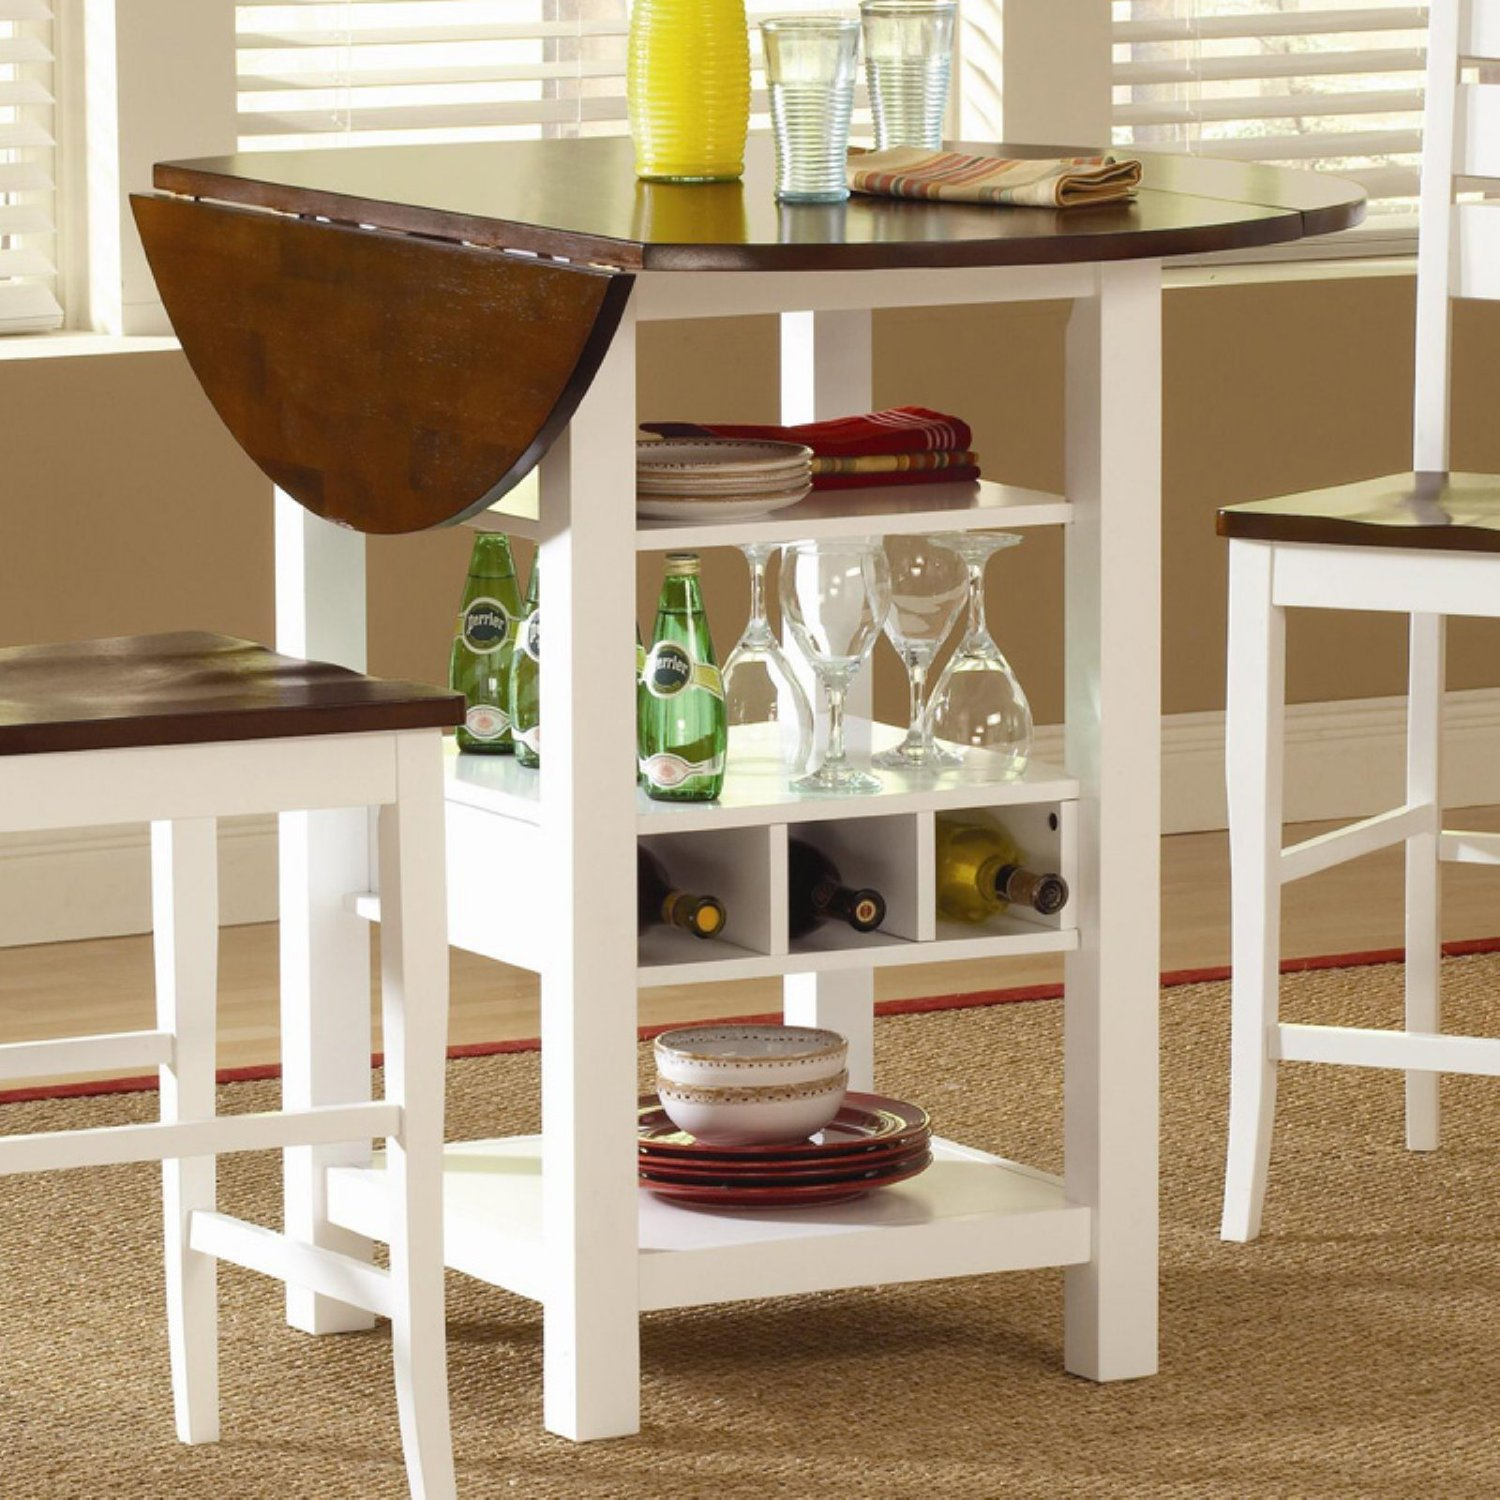 Drop Leaf Tables for Small Spaces | HomesFeed